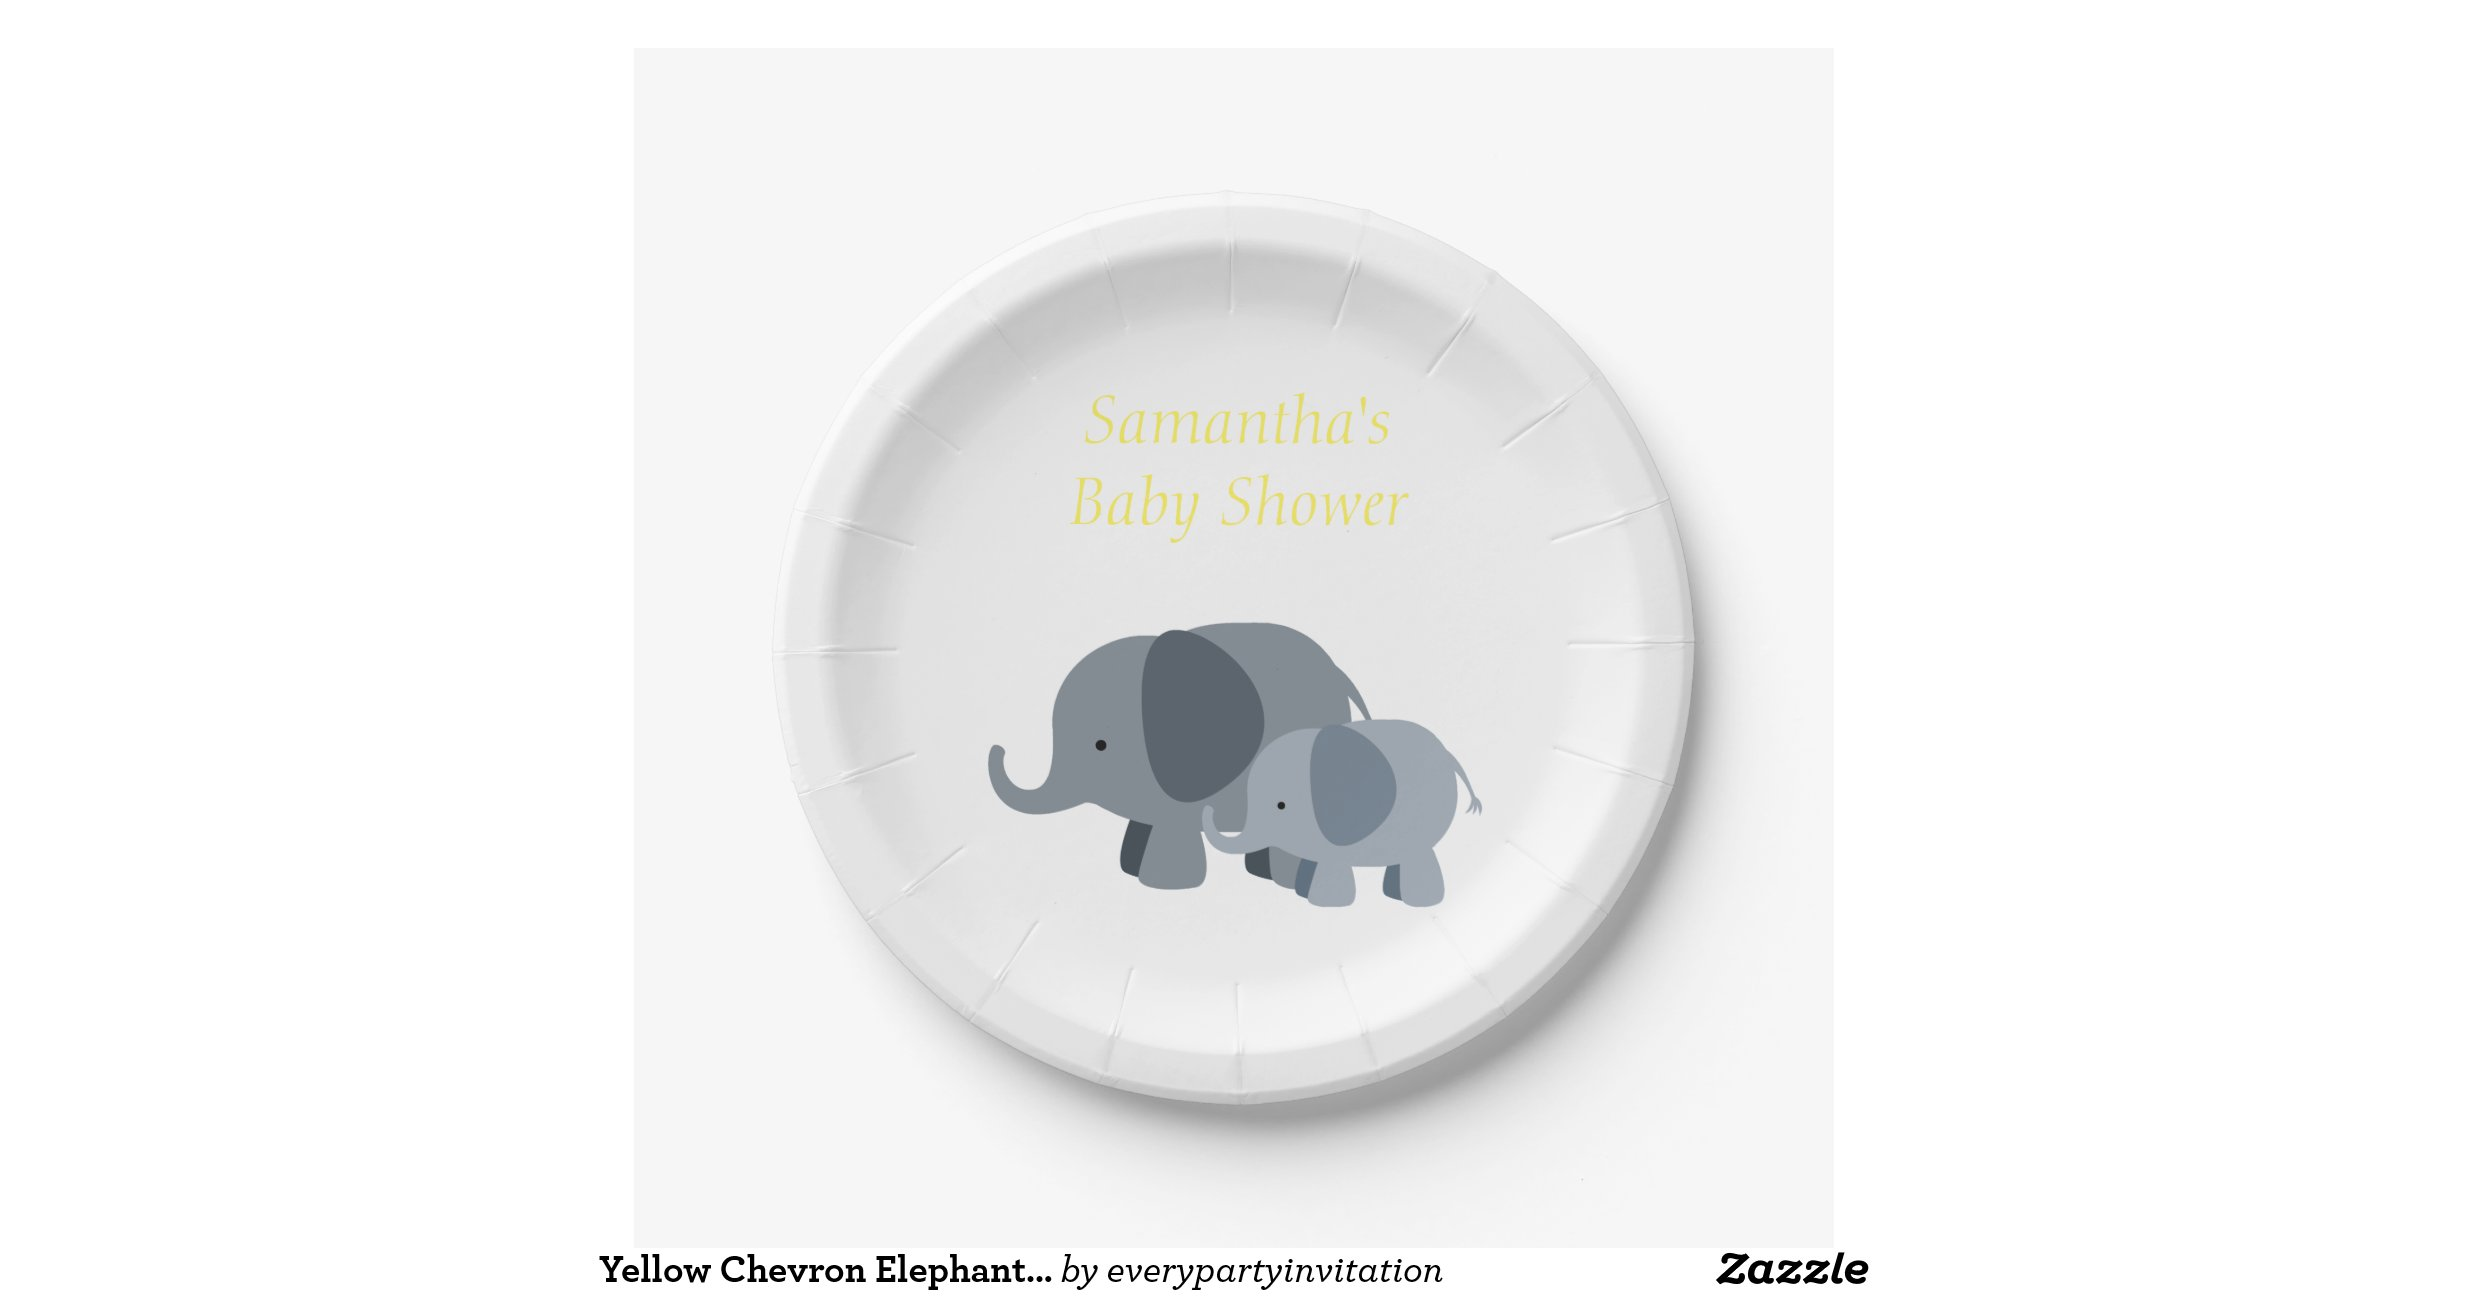 yellow chevron elephant baby shower party plates 7 inch paper plate